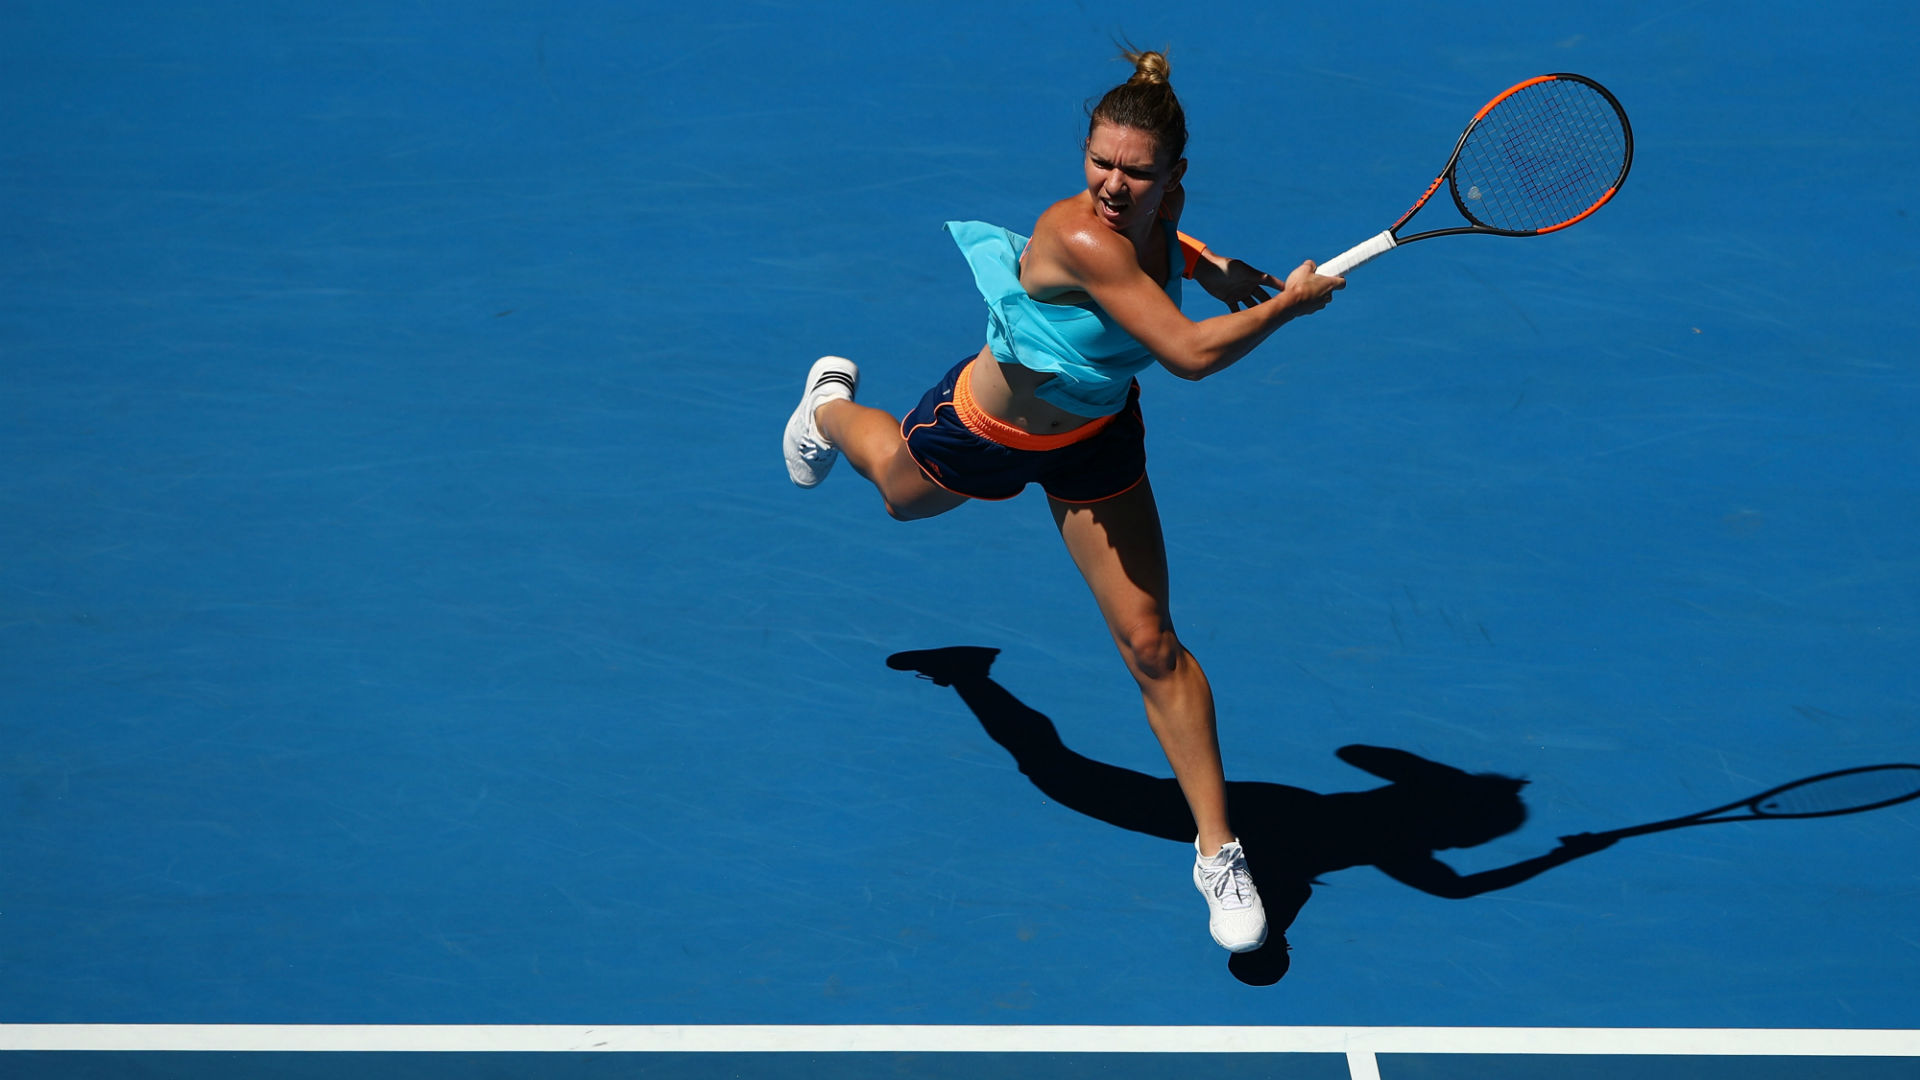 Simona Halep Faces Wild Card in Australian Open First Round